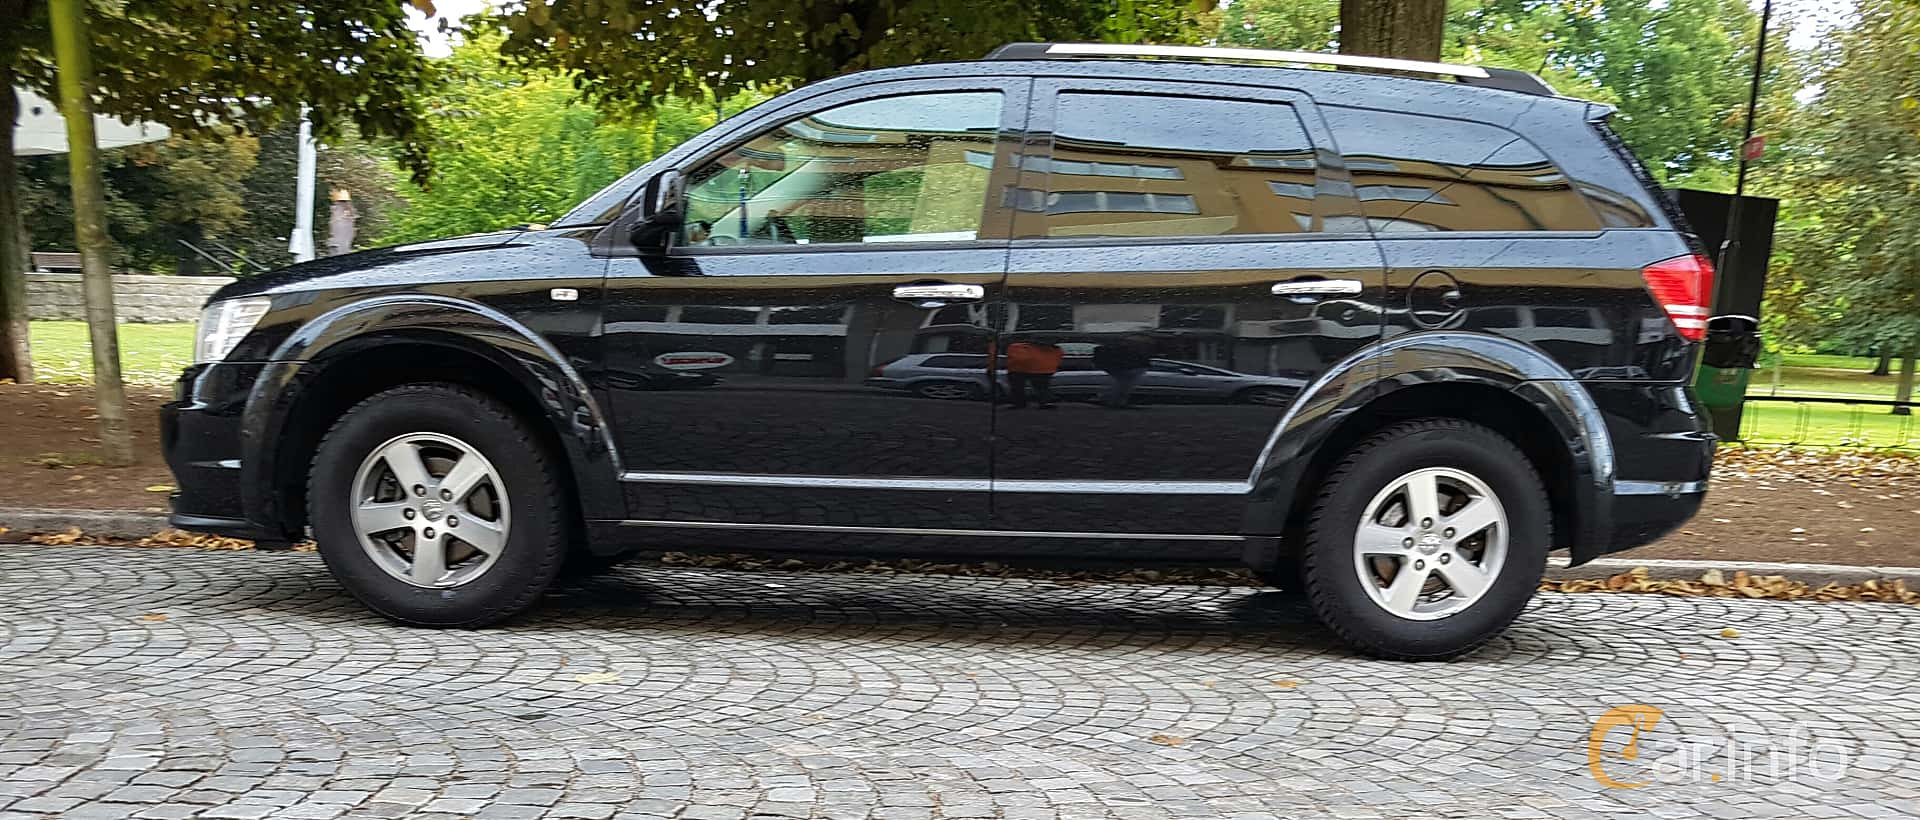 dodge journey 2 0 crd manual 140hp 2010. Black Bedroom Furniture Sets. Home Design Ideas